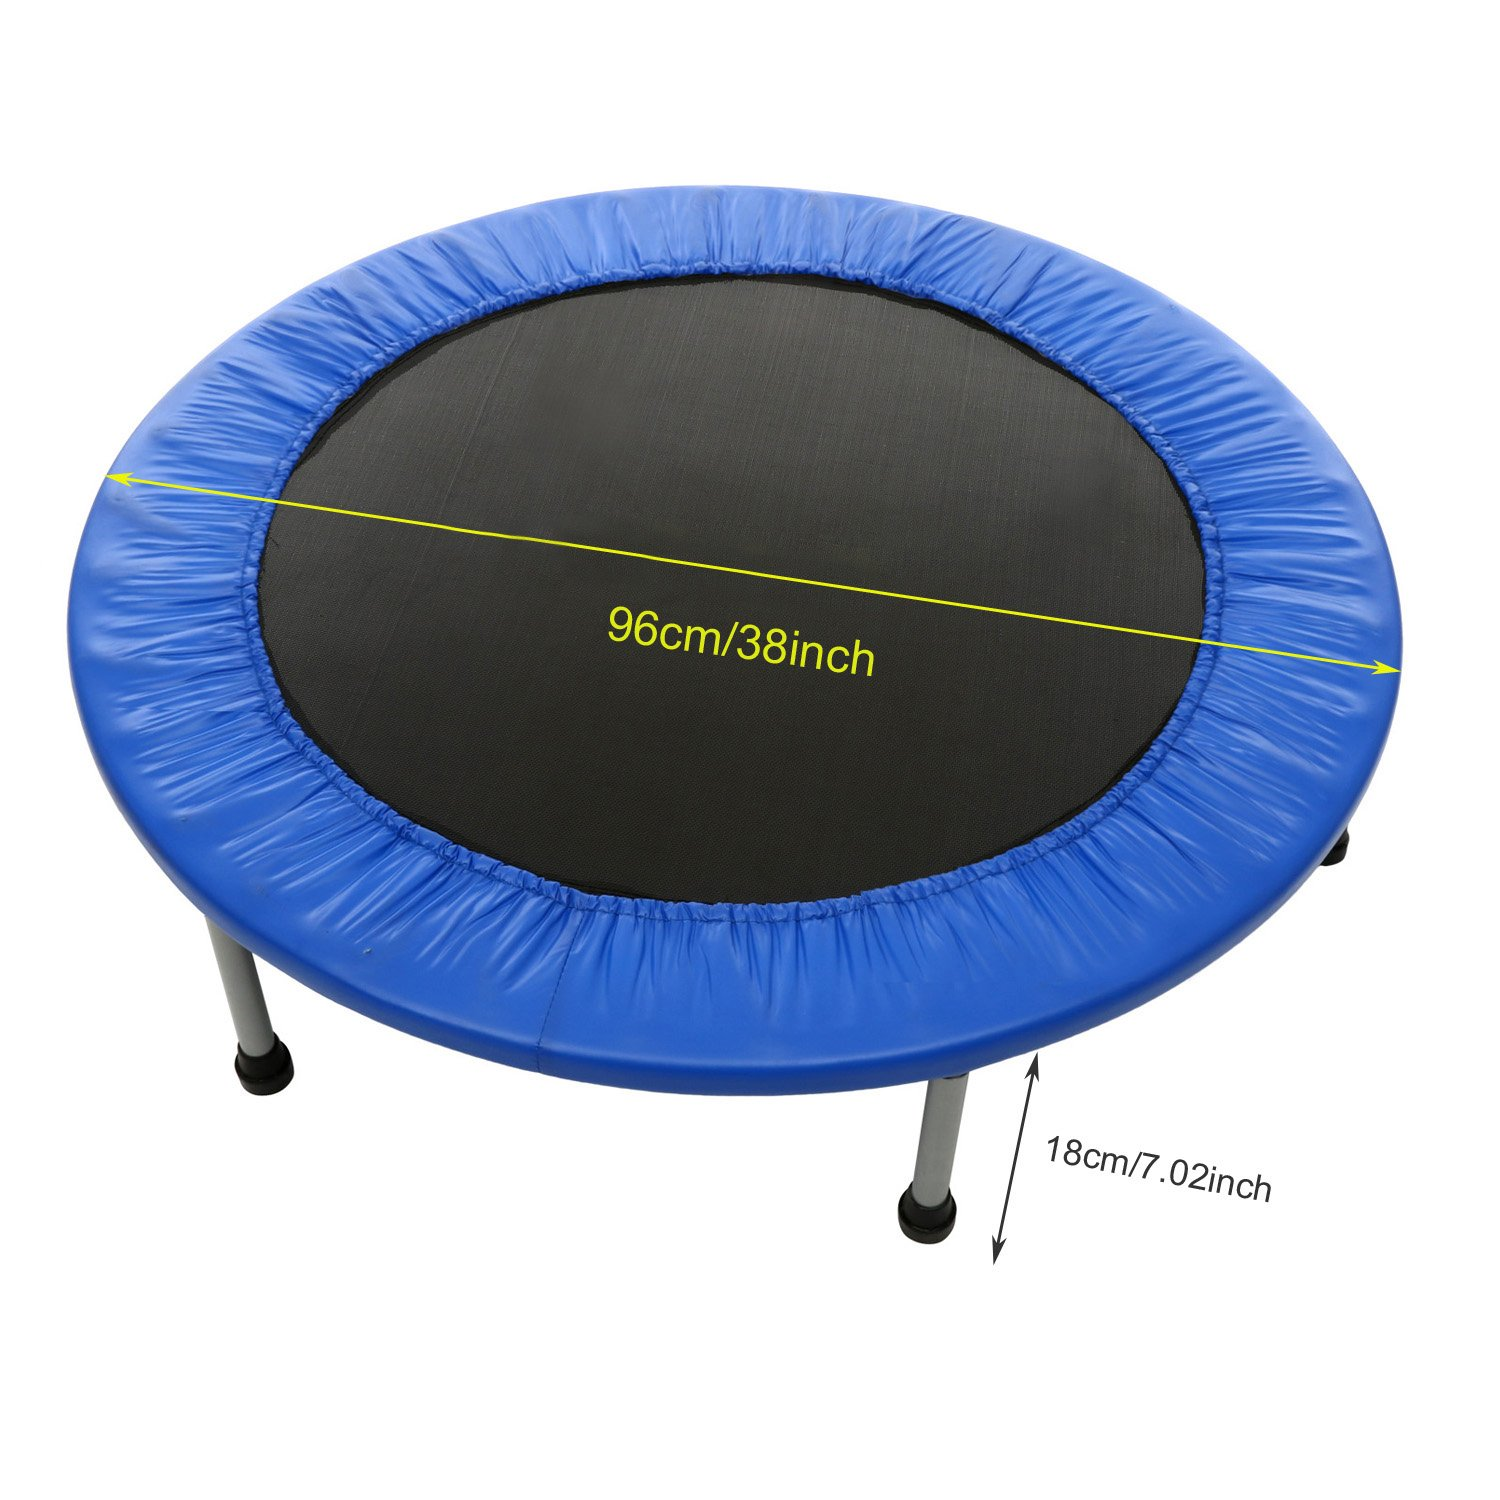 shaofu Rebounders Mini Trampolines Max Load 220lbs Rebounder Fun Trampolines with Padded Frame Cover US Stock